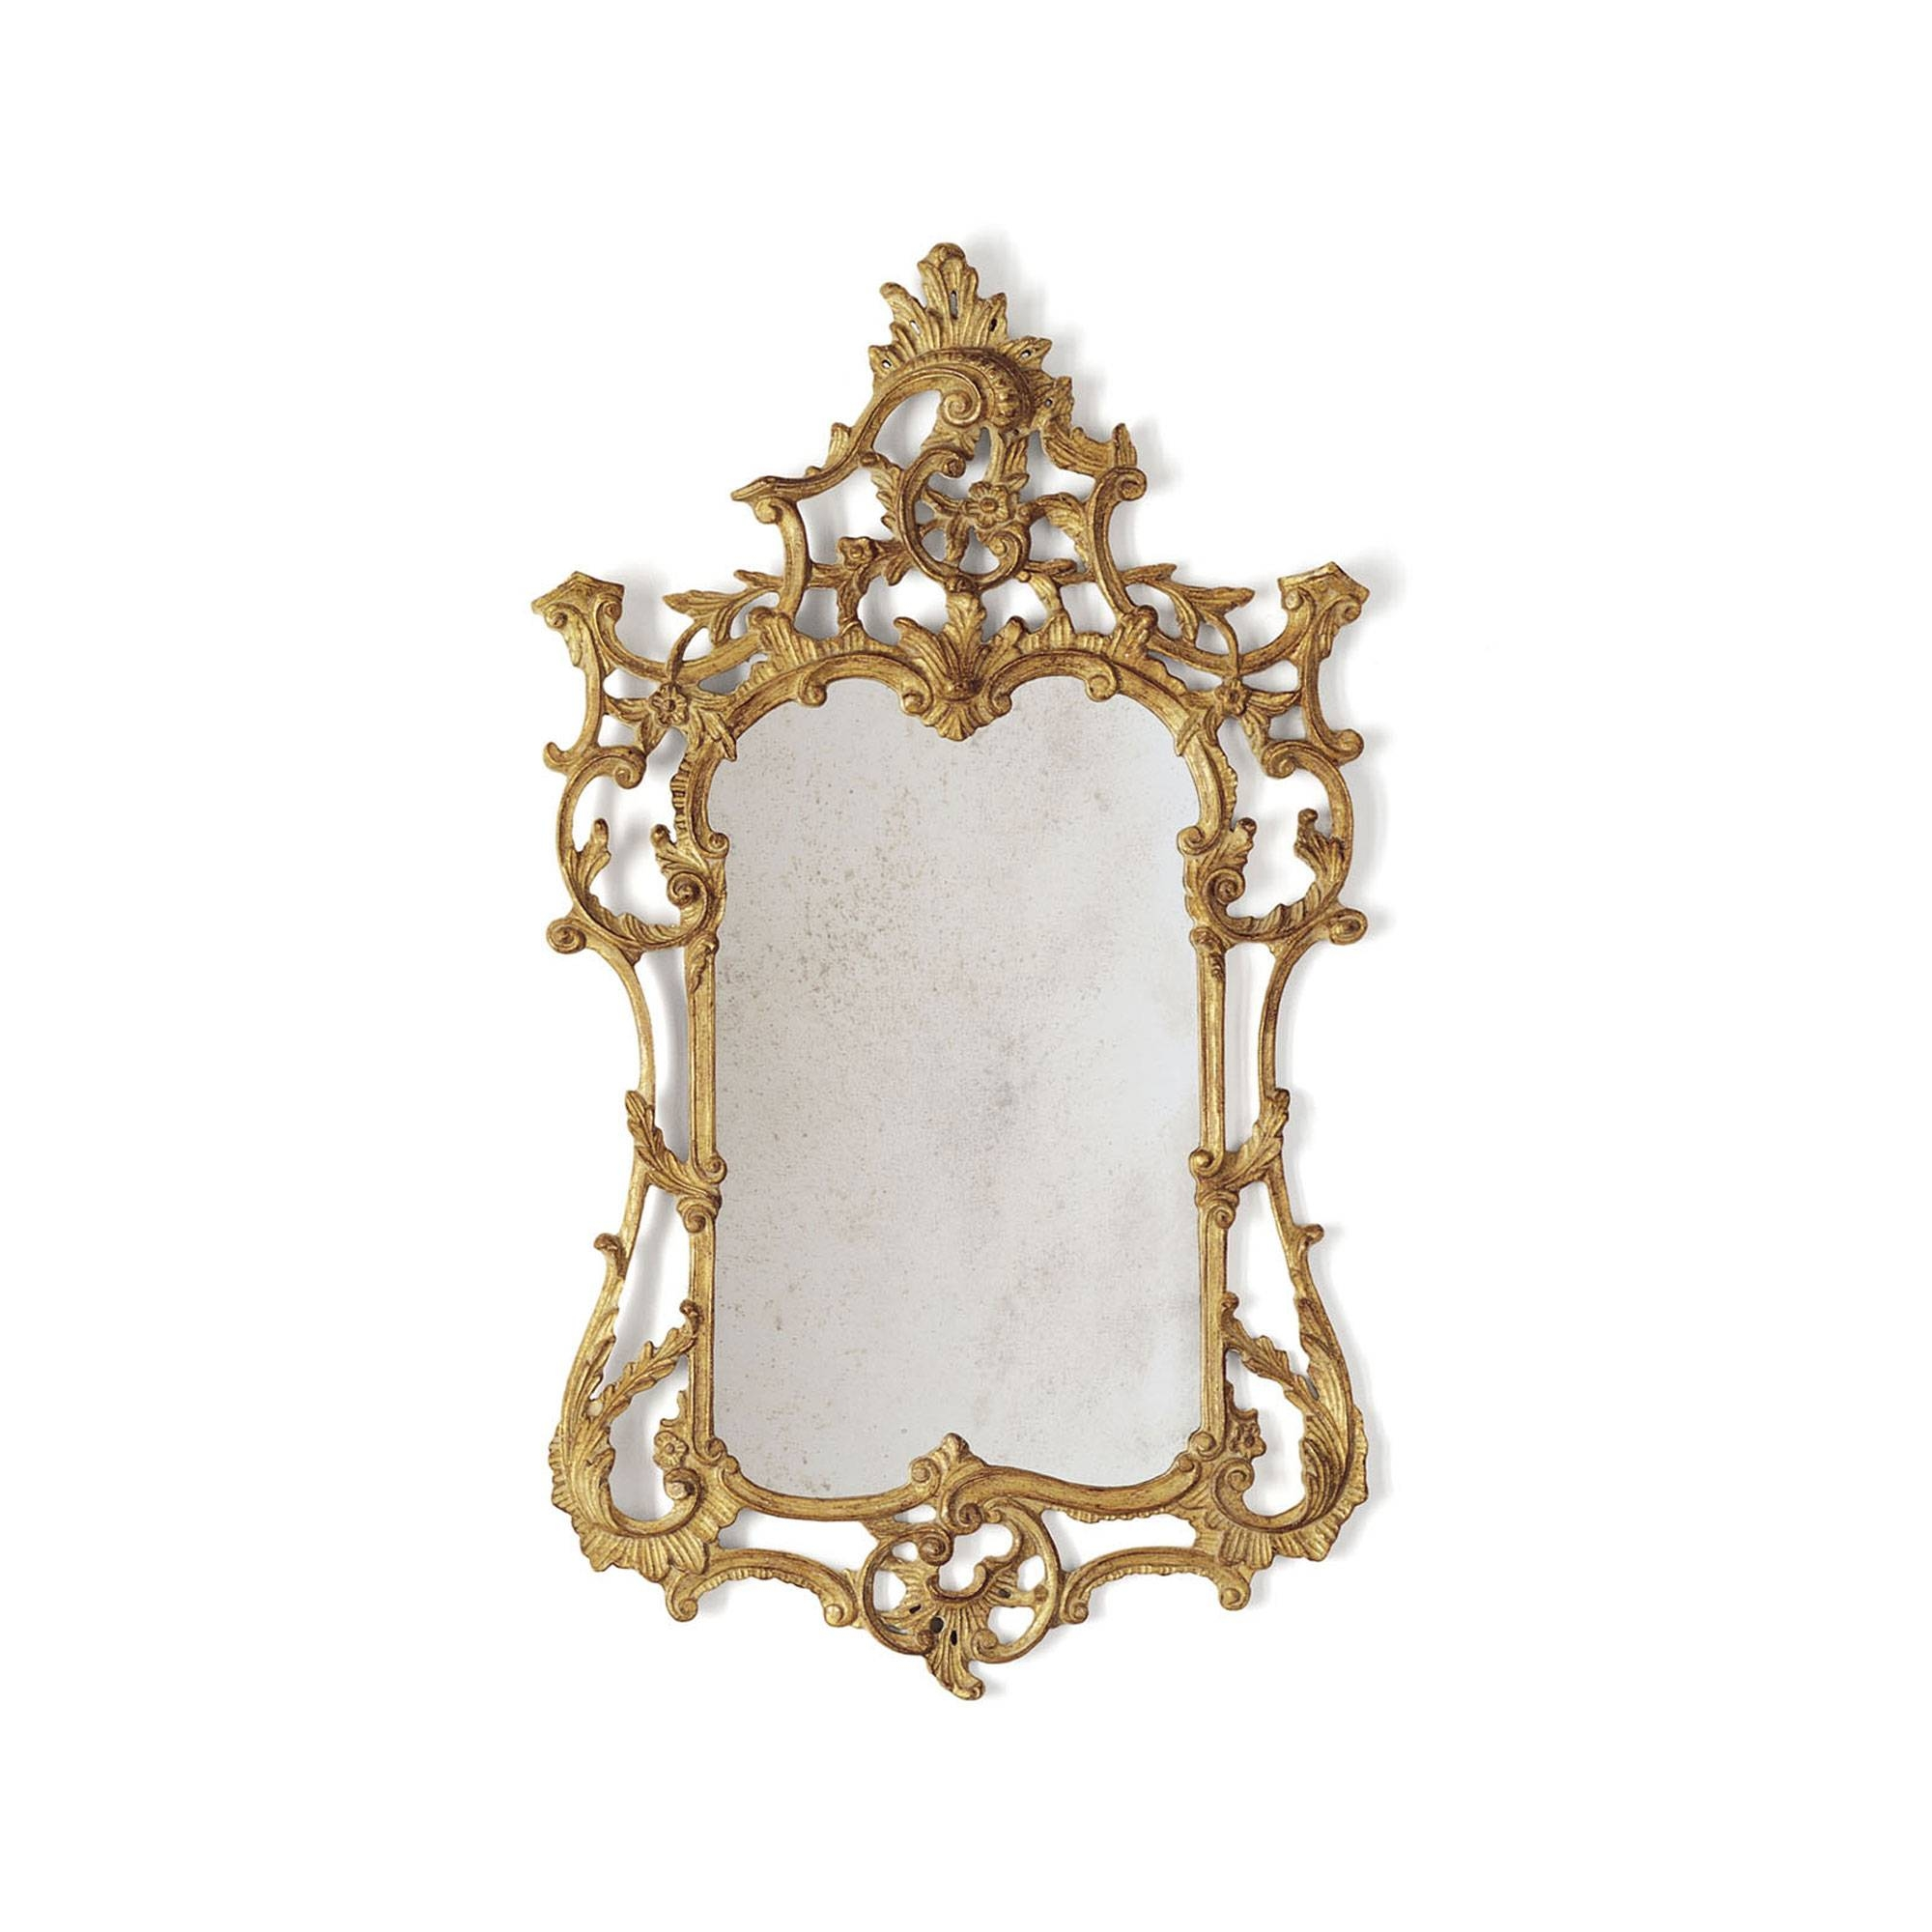 Rococo Mirror | Hand Carved Mirror | Beaumont & Fletcher Pertaining To Gold Rococo Mirrors (View 24 of 25)